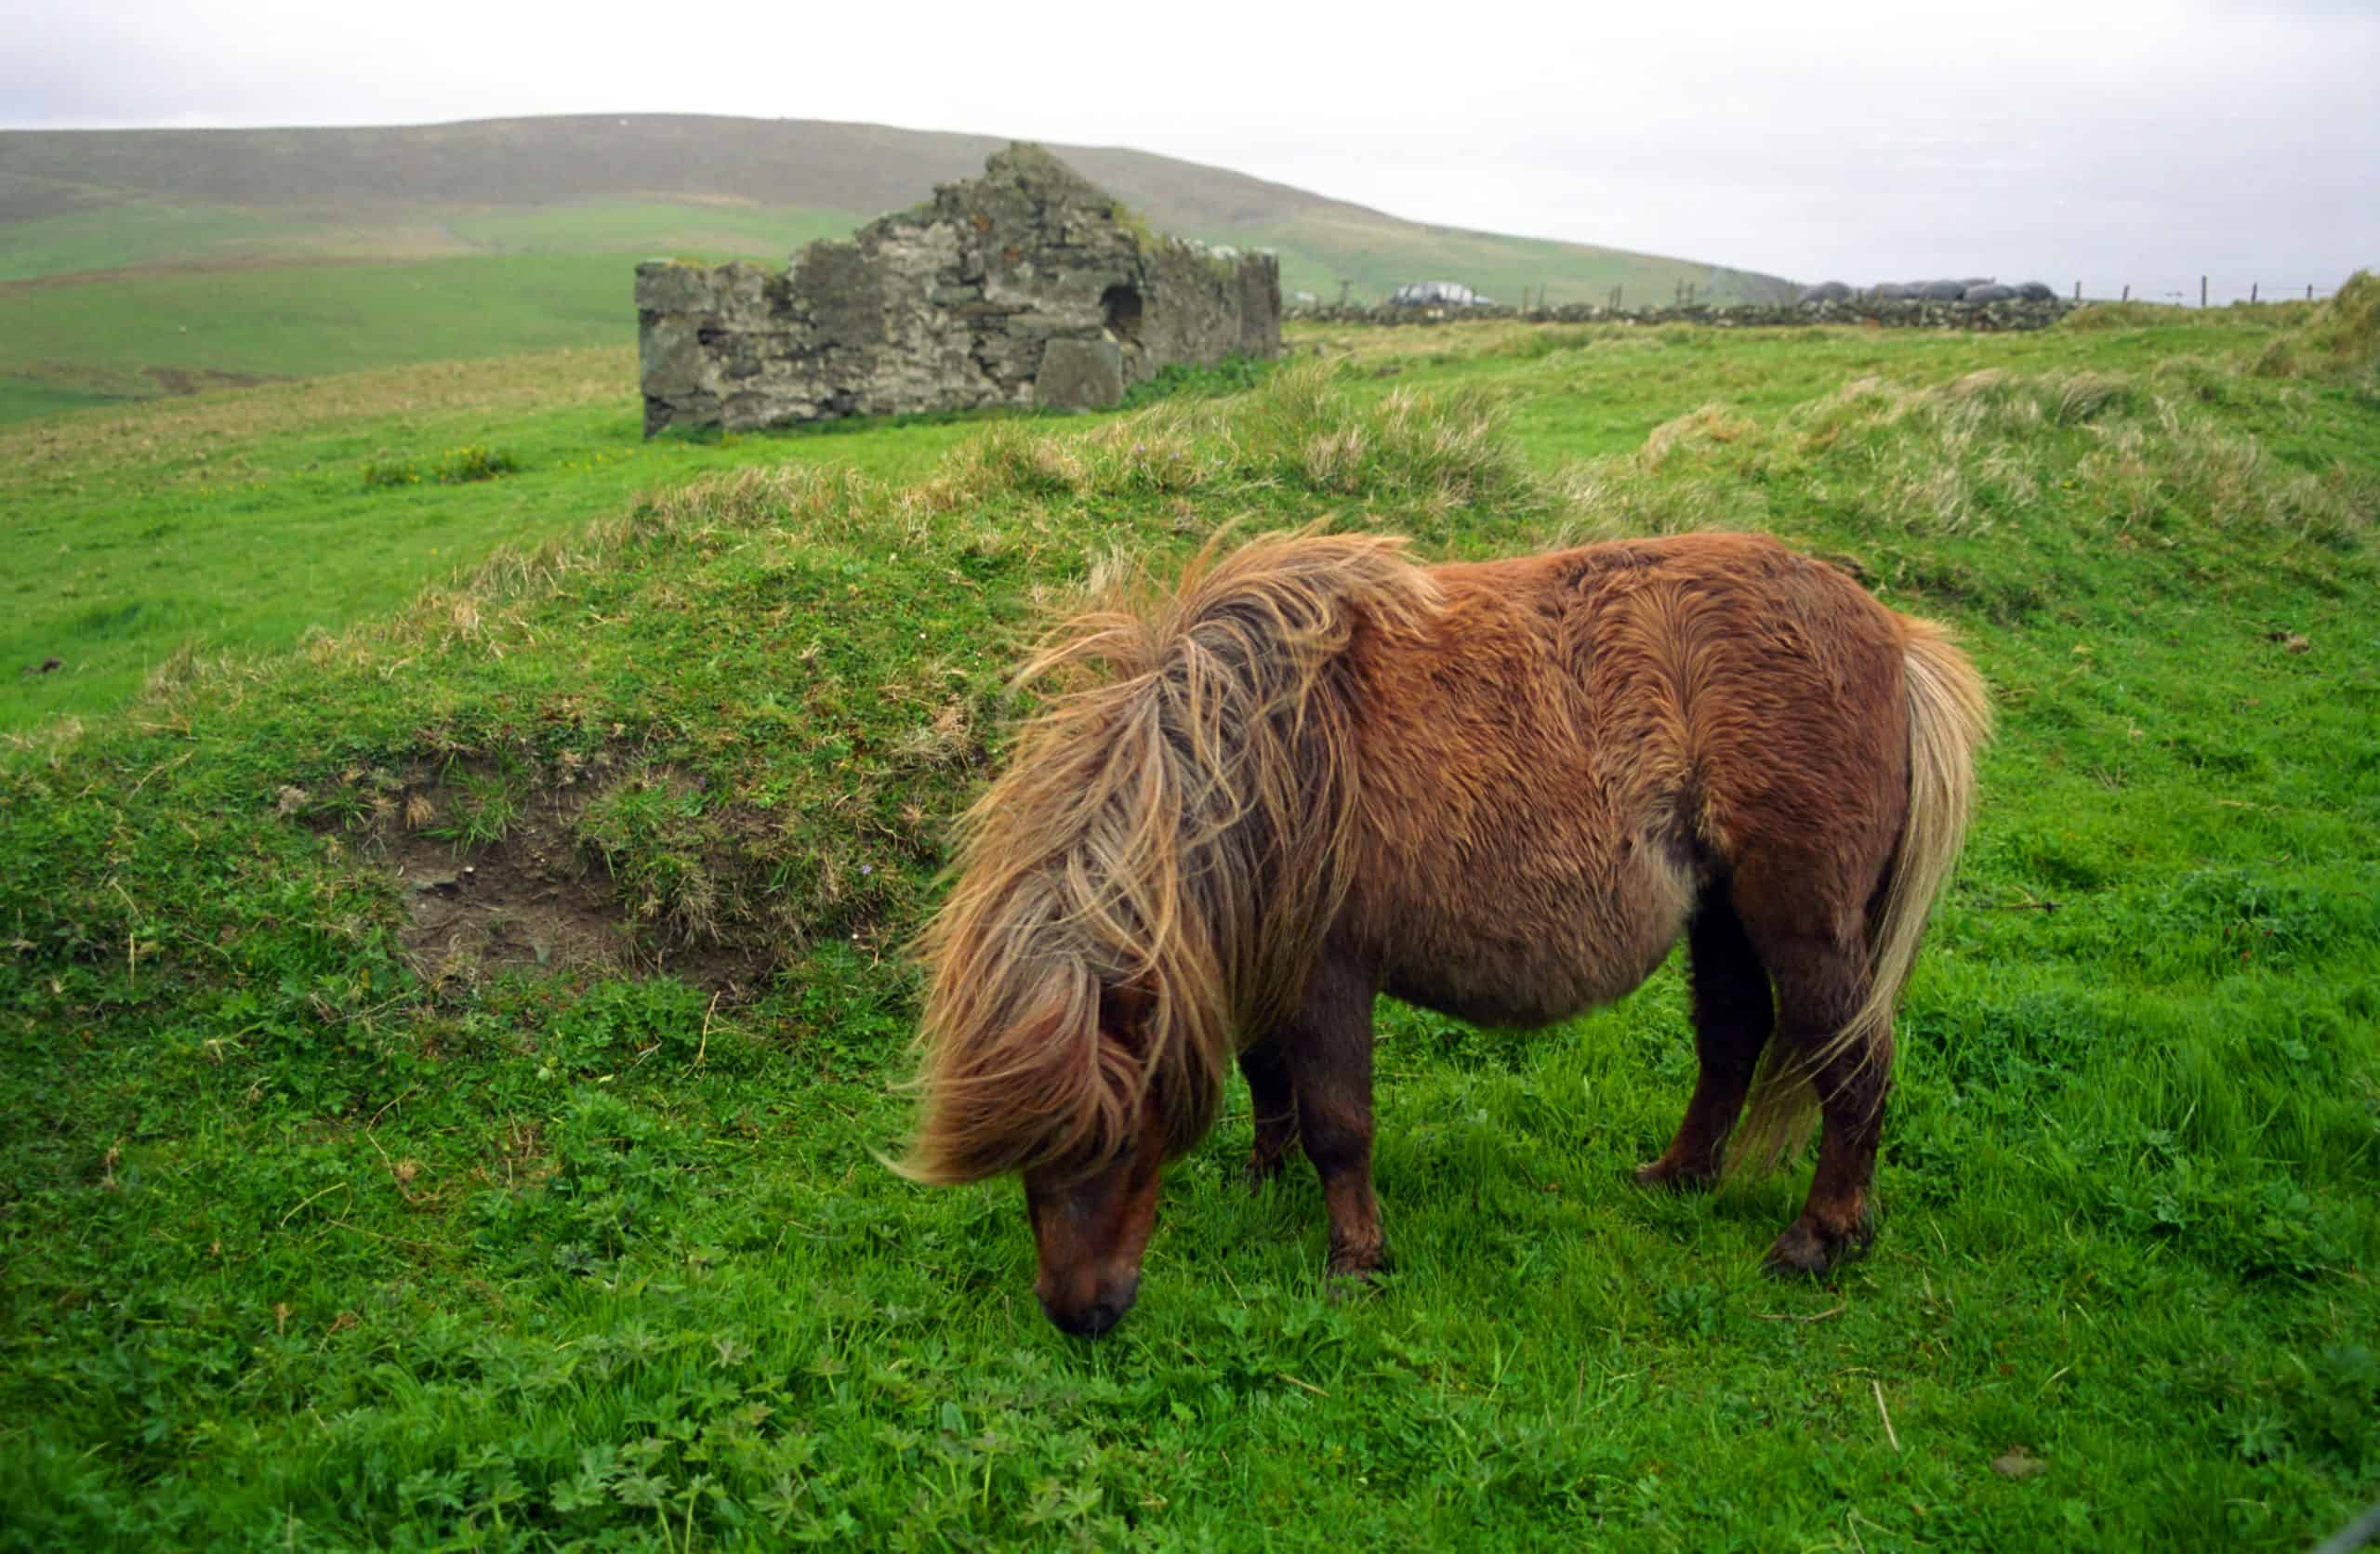 Shetland pony is a speceila species of pony horses, endemic to the Shetland Islands.